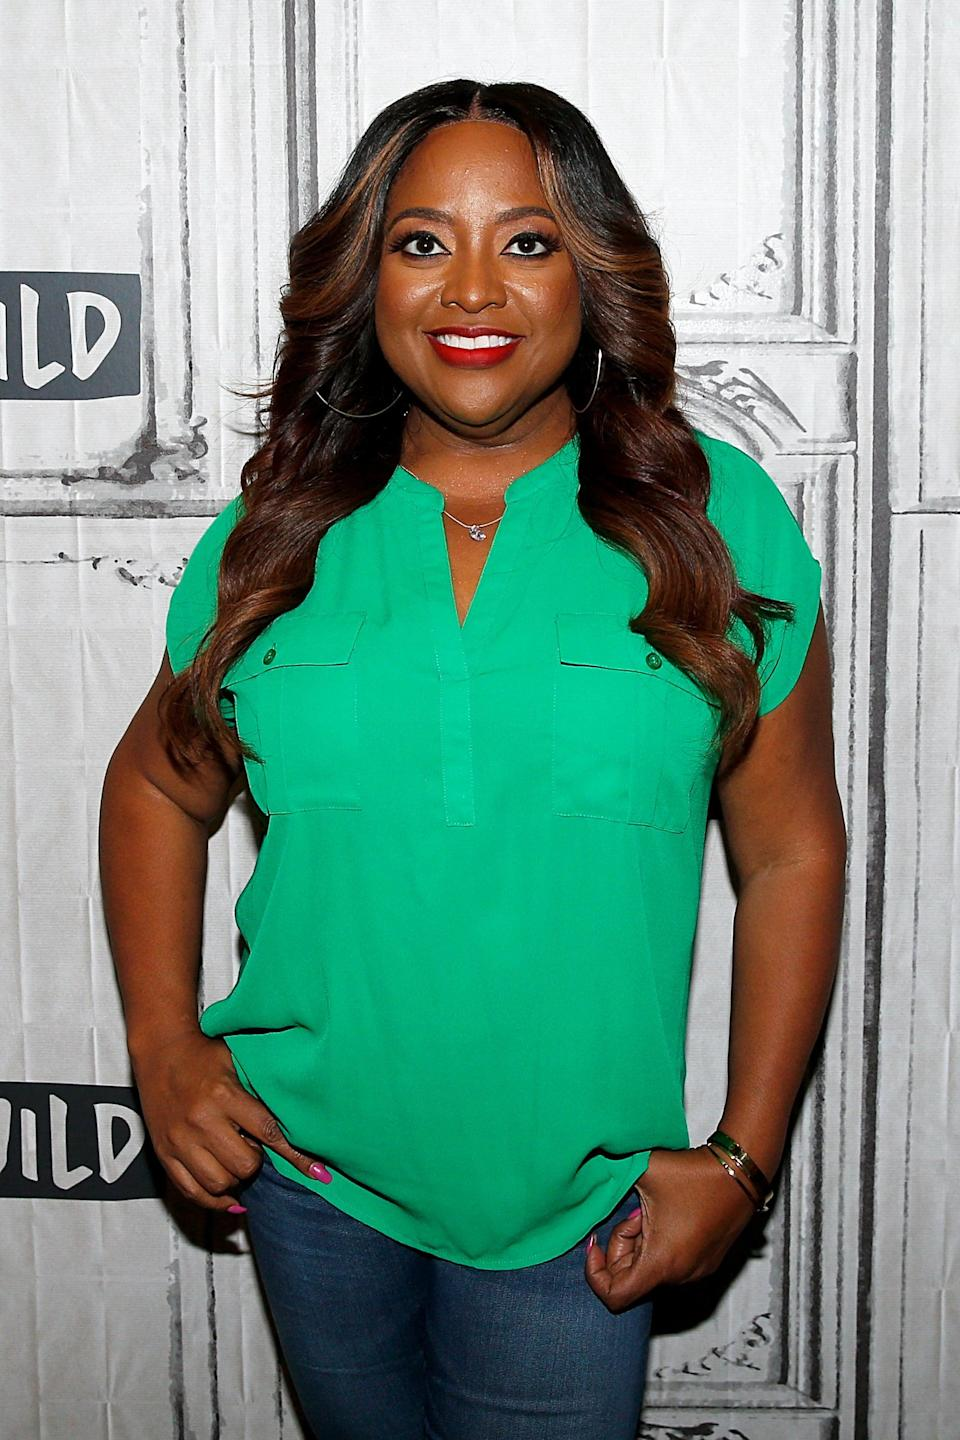 """<p>After being on daytime TV for years, there's no way you don't recognize Shepherd! She co-hosted <strong>The View</strong> from 2007 to 2014, but she's much more than a talk show host. A longtime comic actress, she's had roles on everything from the Disney show <strong>K.C. Undercover</strong> to <strong>Rick and Morty</strong> to <strong>How I Met Your Mother</strong> and <strong>30 Rock</strong>. More recently, she competed on <strong><a class=""""link rapid-noclick-resp"""" href=""""https://www.popsugar.com/latest/The-Masked-Singer"""" rel=""""nofollow noopener"""" target=""""_blank"""" data-ylk=""""slk:The Masked Singer"""">The Masked Singer</a></strong> in 2019 and currently appears on the sitcom <strong>Call Your Mother</strong>.</p>"""